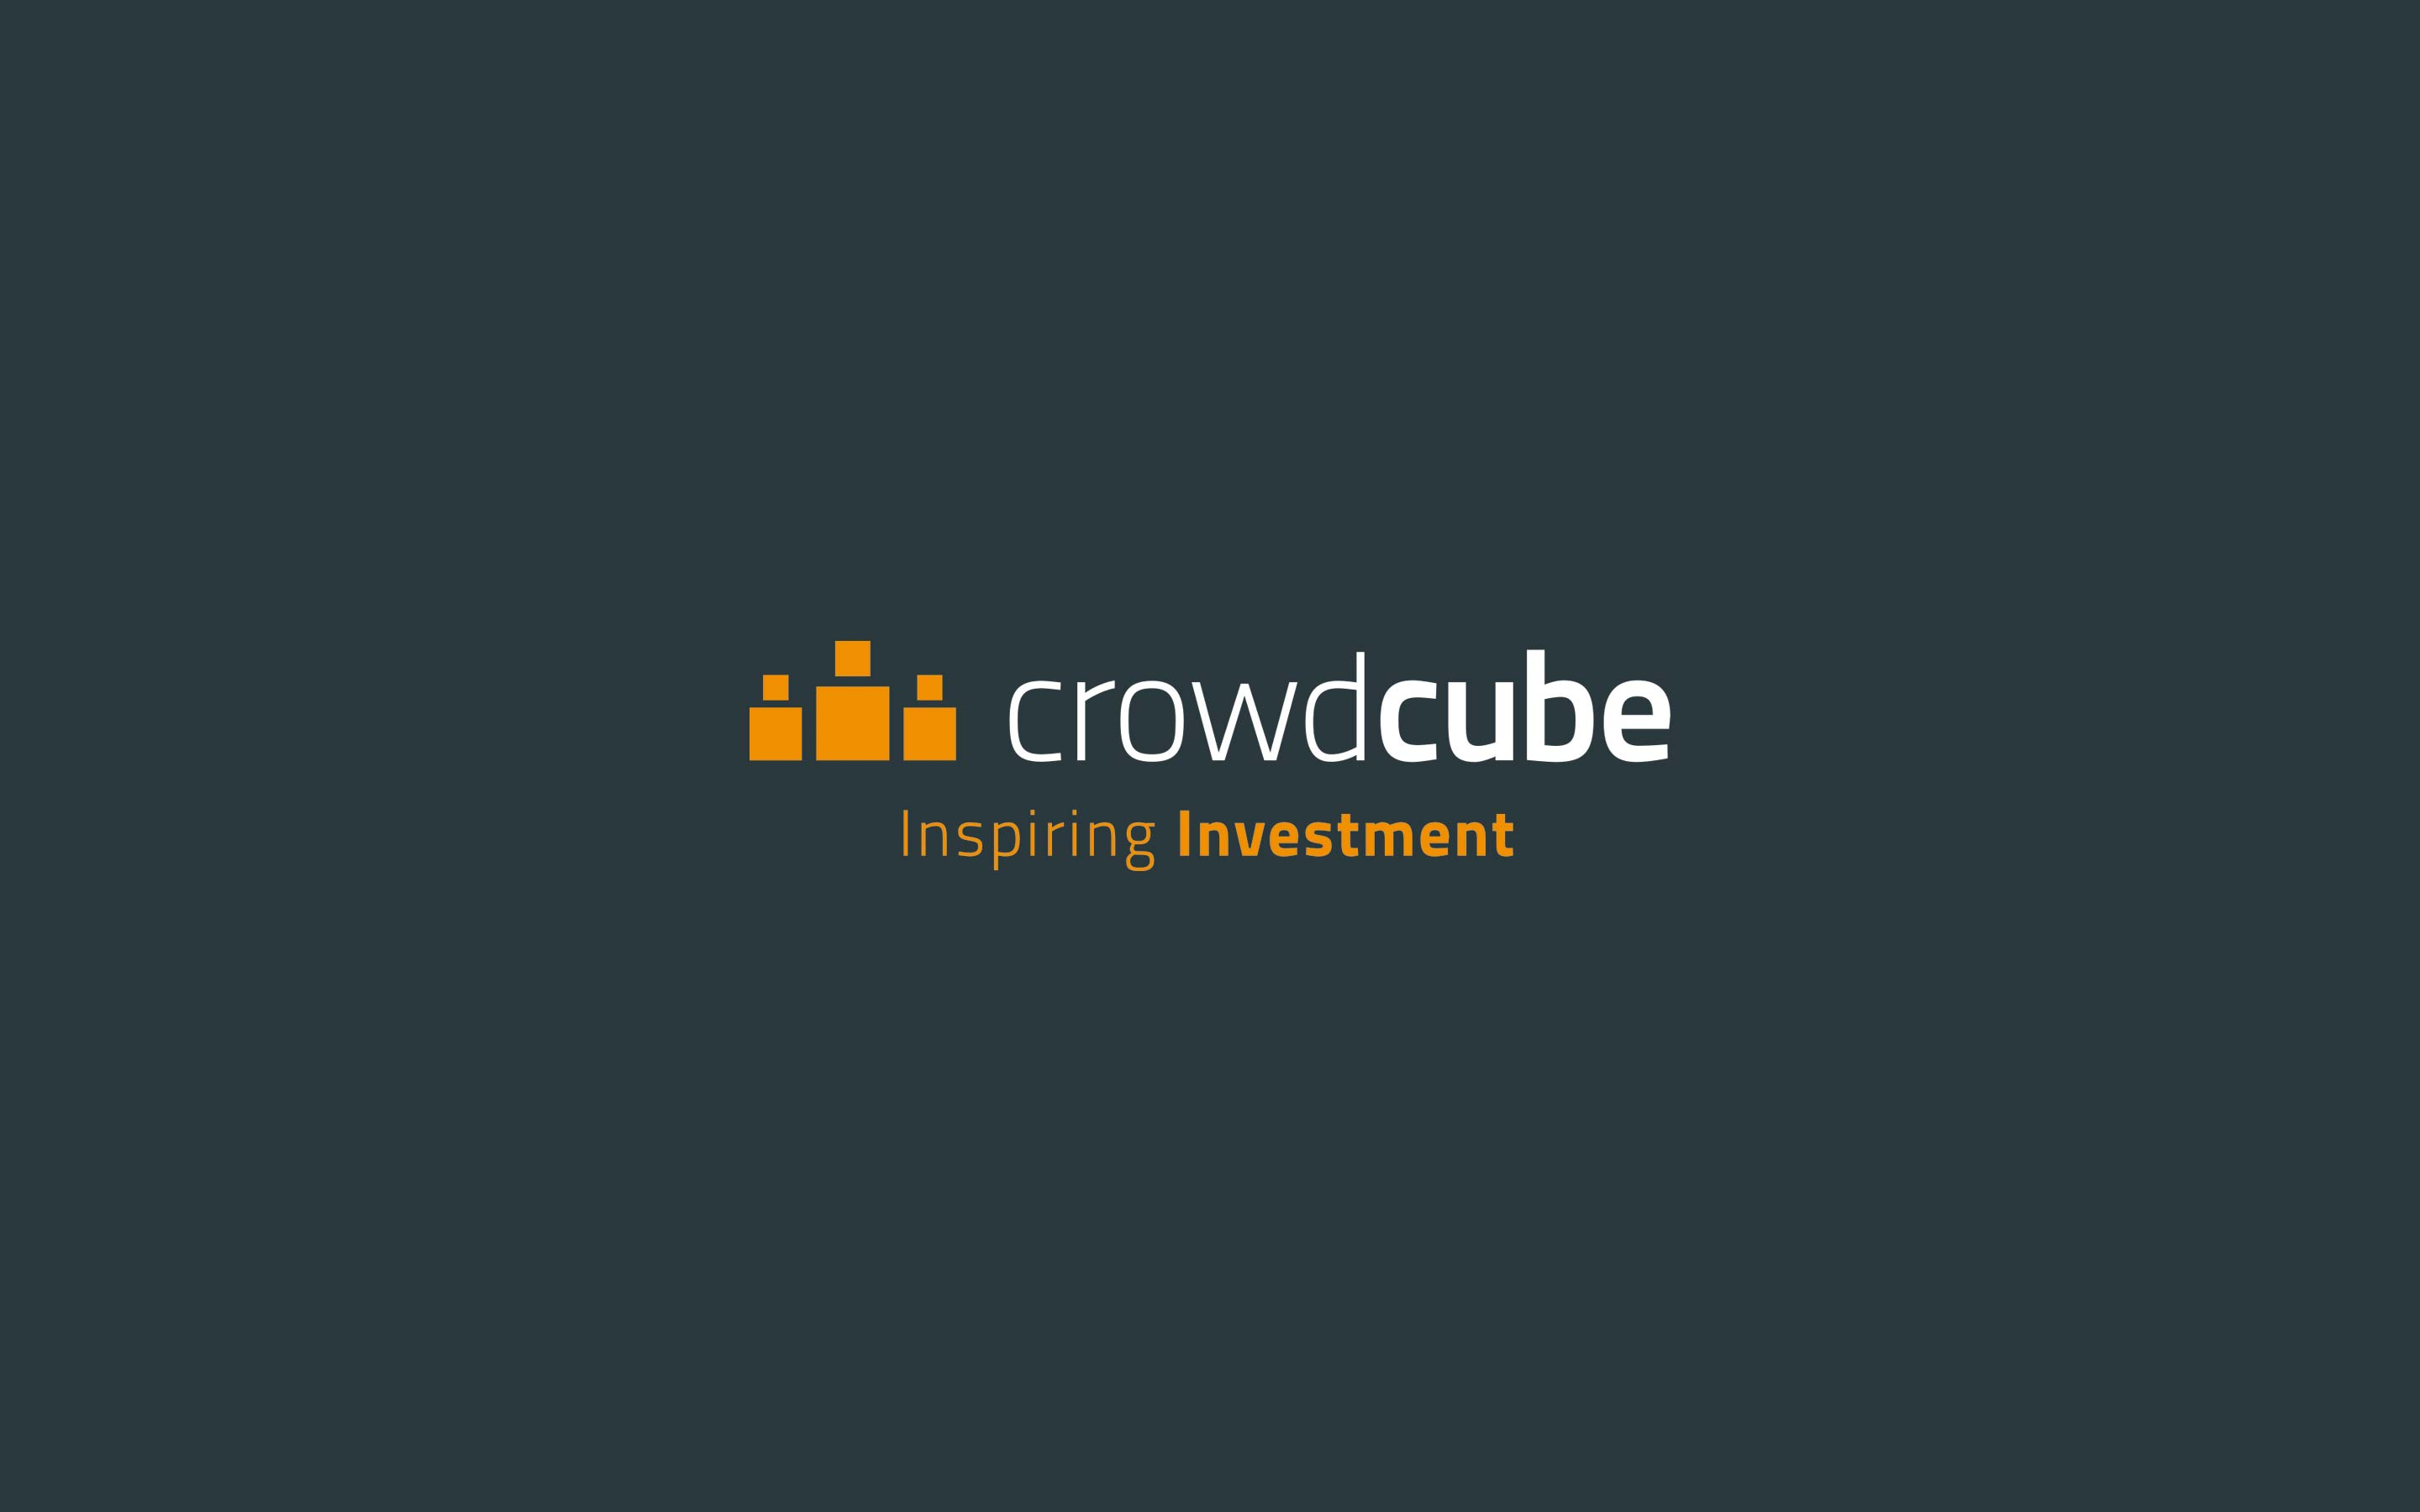 Crowdcube - Lightvert crowdfunding campaign